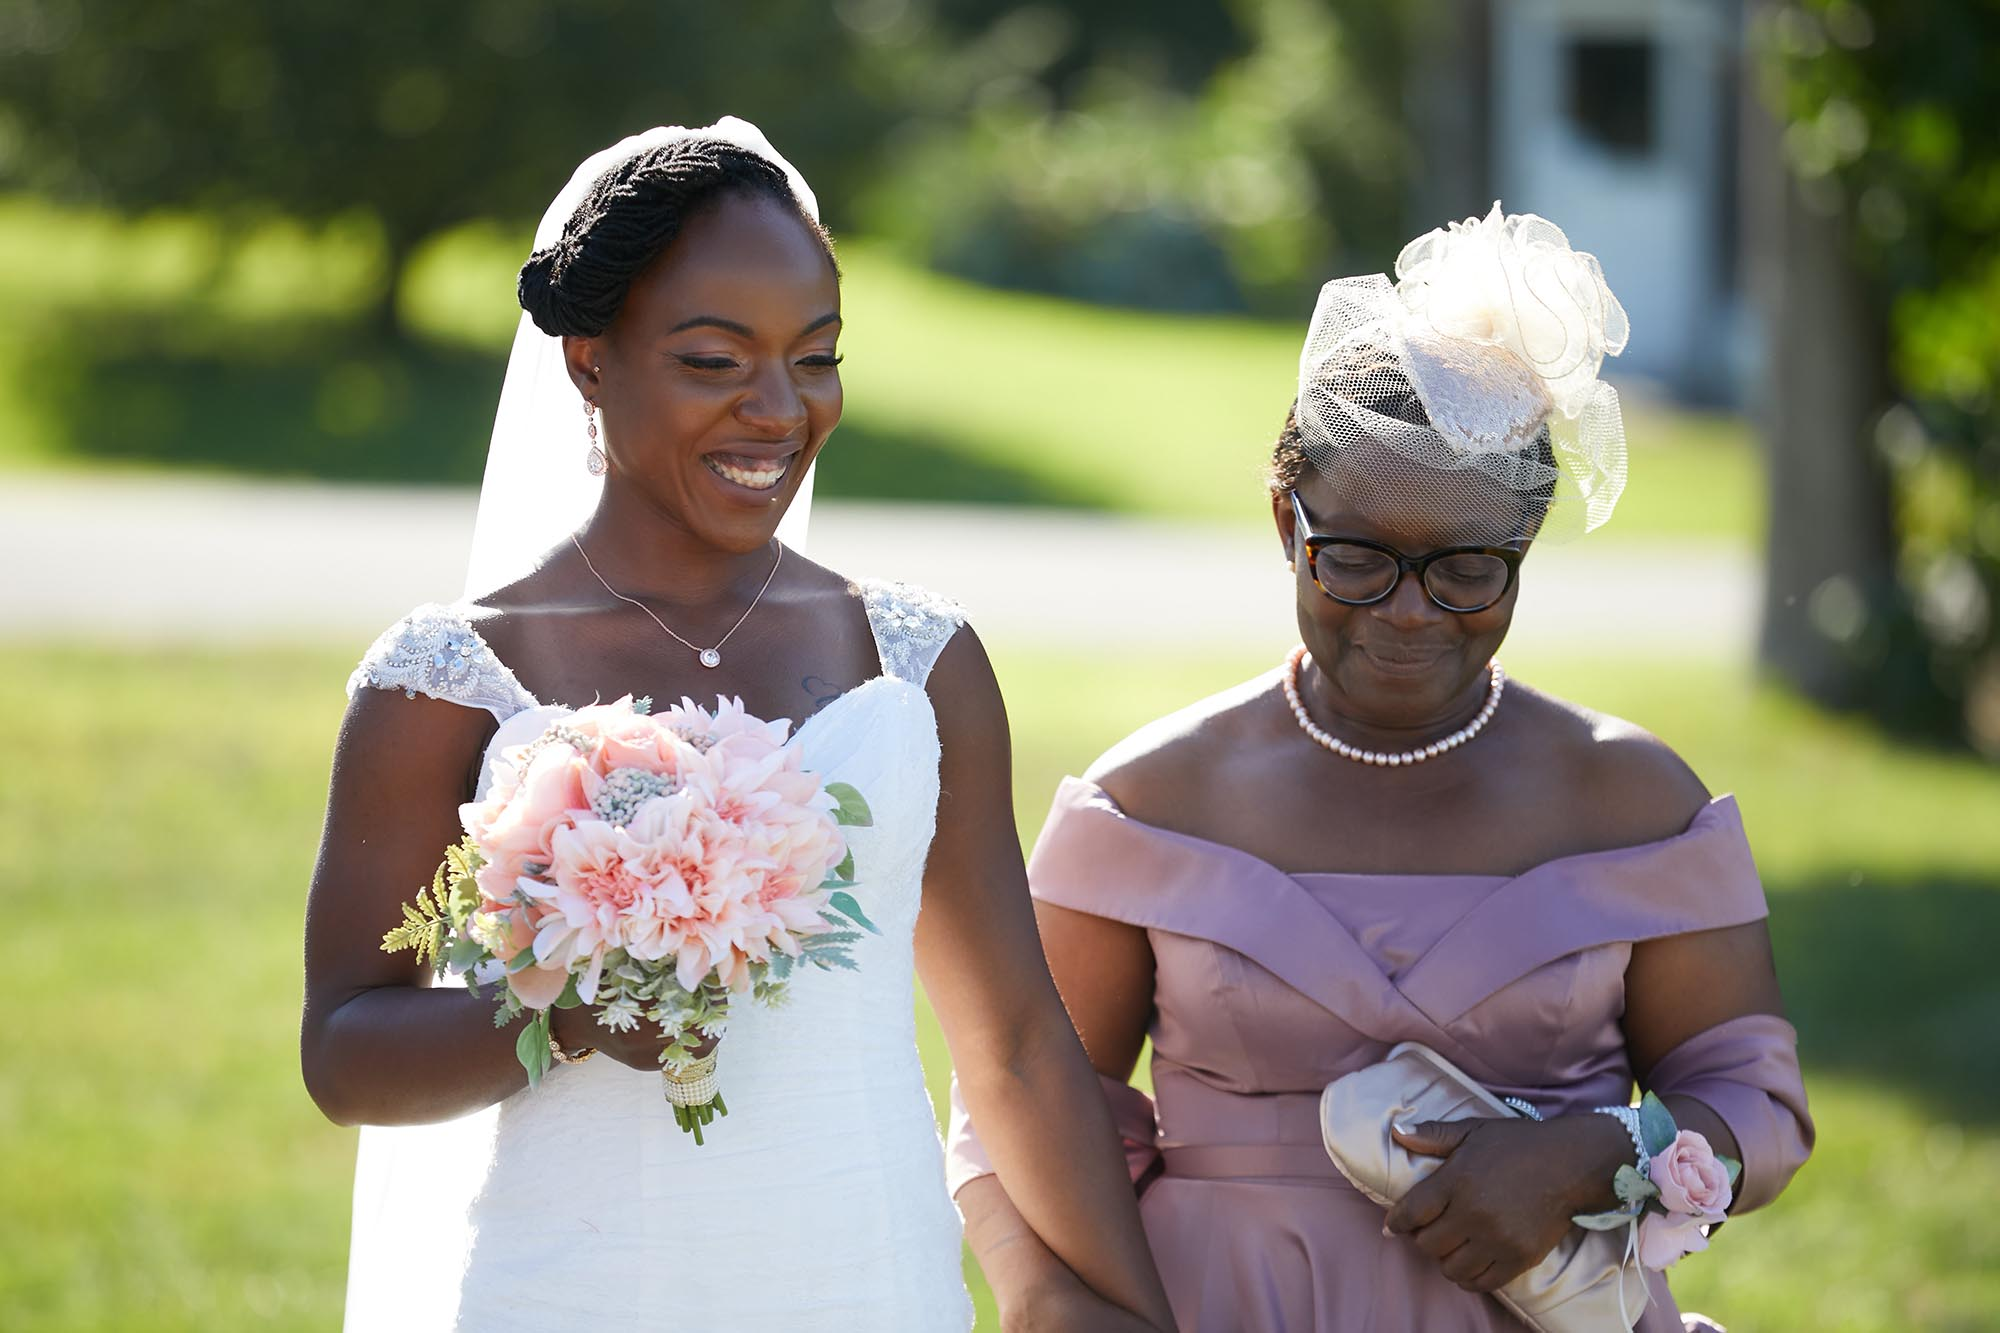 A bride walking down the isle with her mother.